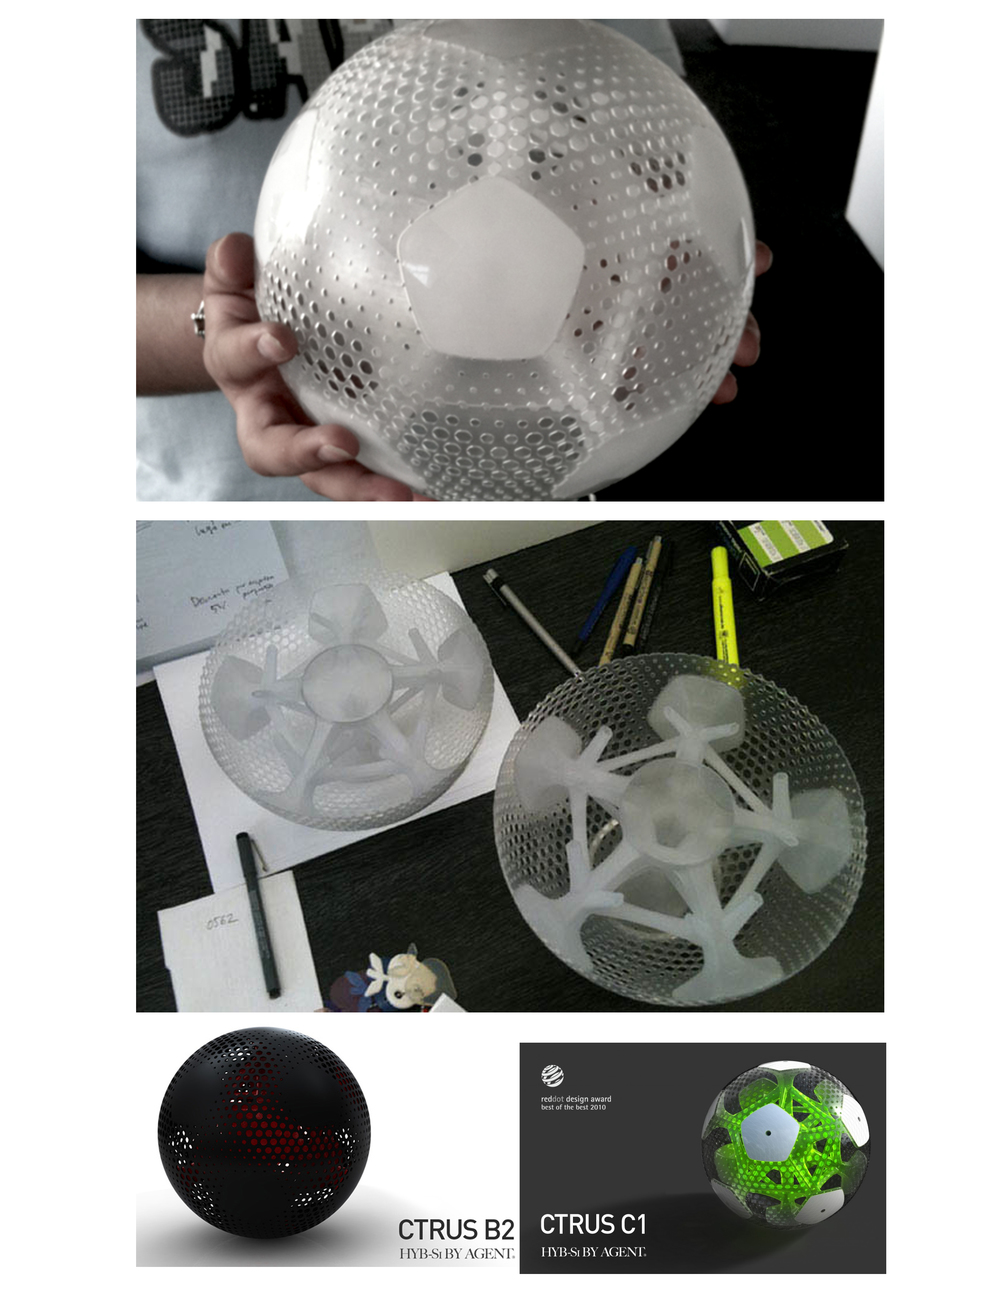 """ Though claimed to be the first football you can see through on the earth, the transparent design is not the only character of the CTRUS soccer ball. Made out of reinforced elastomers, the outer net-embedded shell not only emulates the bounce of the inflated football, but offers it the advantage of not loosing air. The electronic components inside also enable the control stations to wirelessly control the ball"" from inewidea"